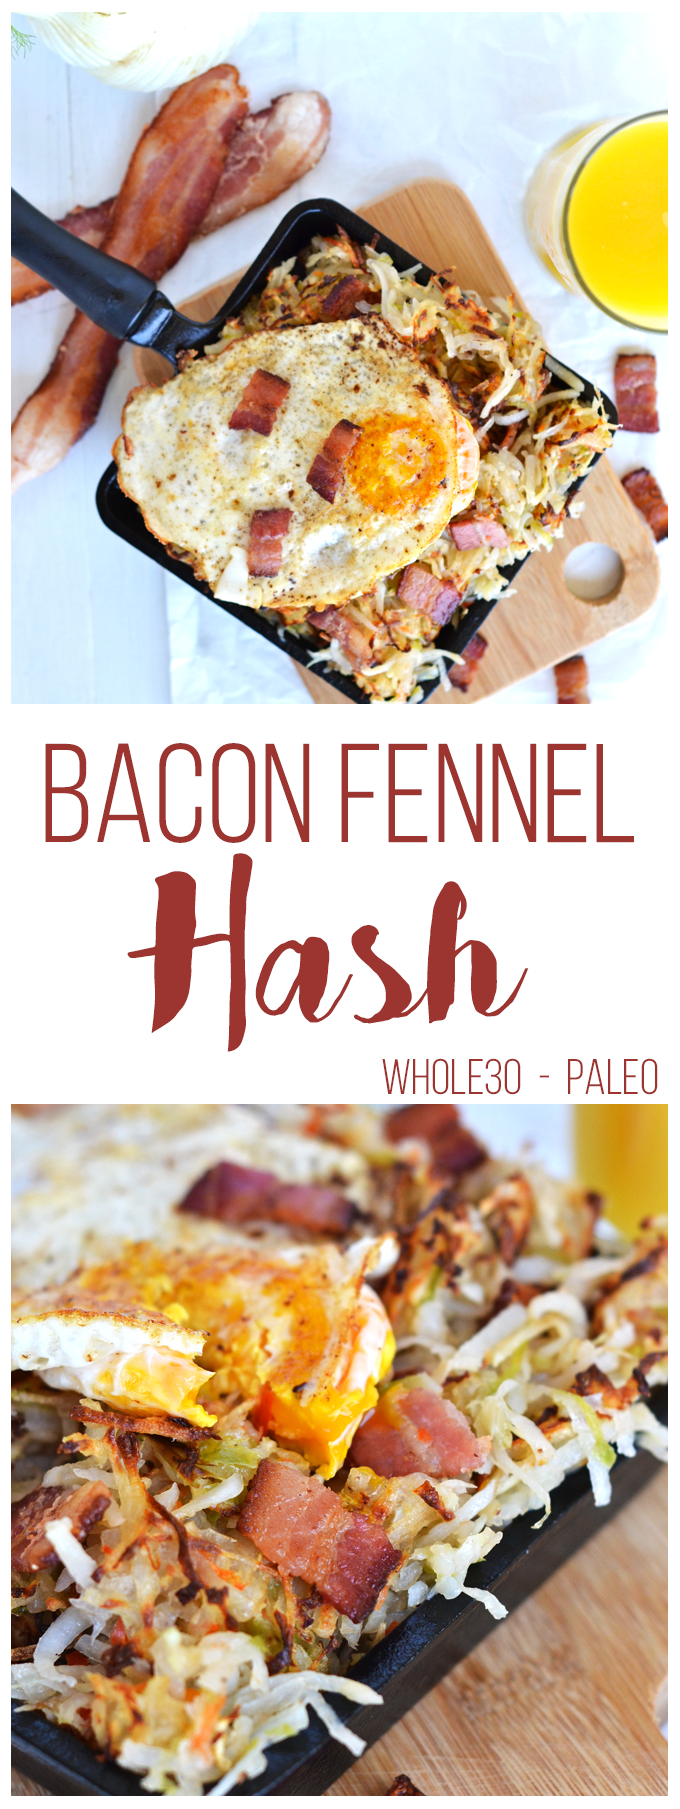 This Bacon Fennel Hash is the perfect Whole30 & Paleo breakfast that is full of flavor and super easy to make! Top with a fried egg for a complete meal!